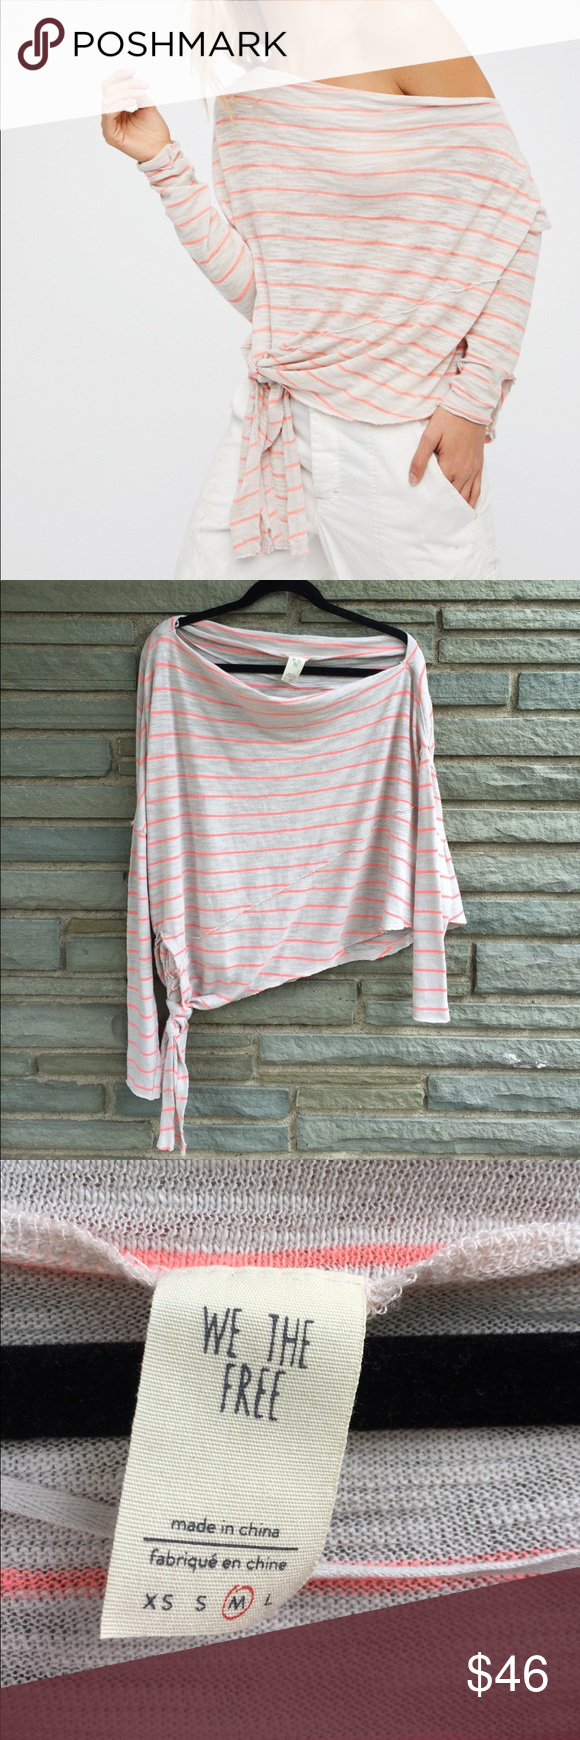 cc65f2f9fc Free People Off the Shoulder Tee NWT. We the Free Striped Love Lane Tee in  Grey/Neon Combo. Relaxed Fit with Slouchy Off-Shoulder Fit and Effortless  Tie ...